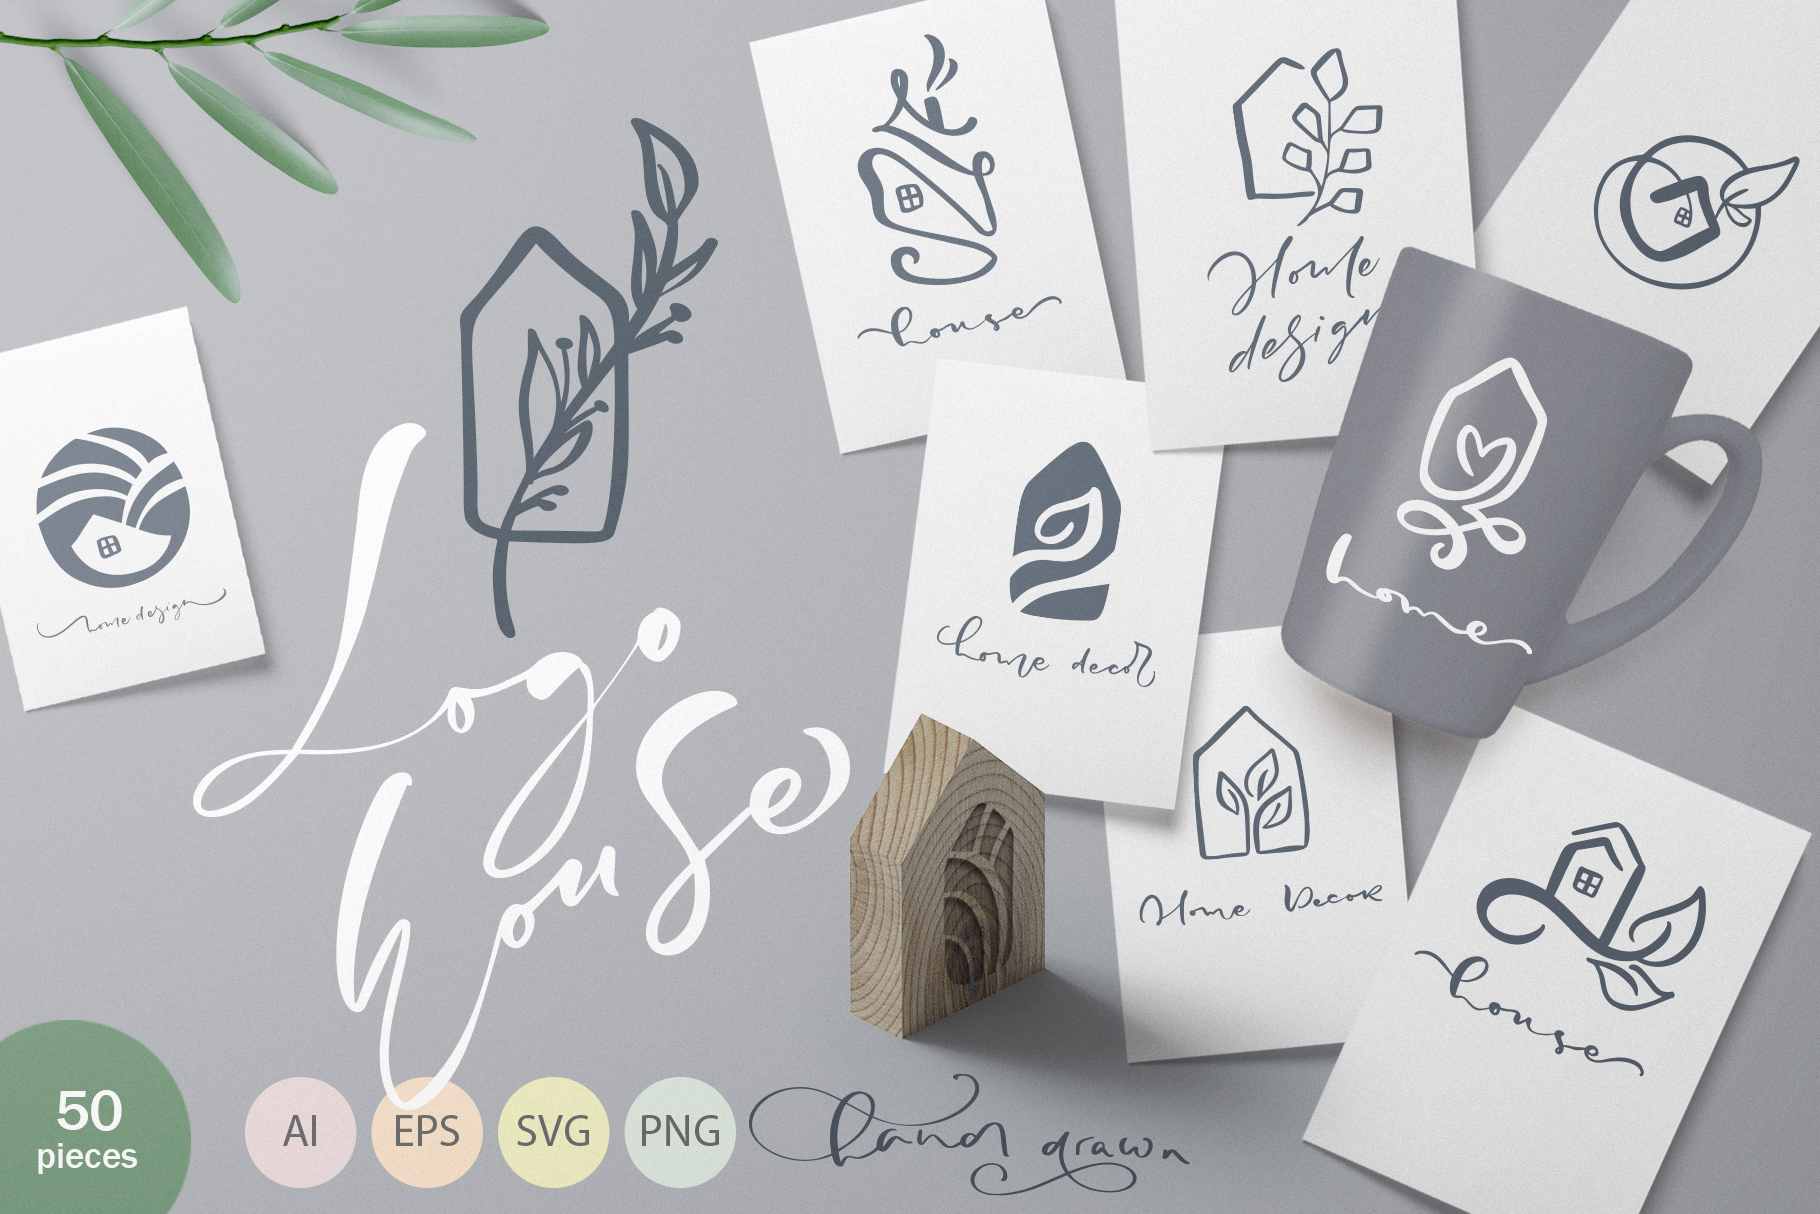 Download Free Hand Drawn Logo House Vector Elements Graphic By Happy Letters for Cricut Explore, Silhouette and other cutting machines.